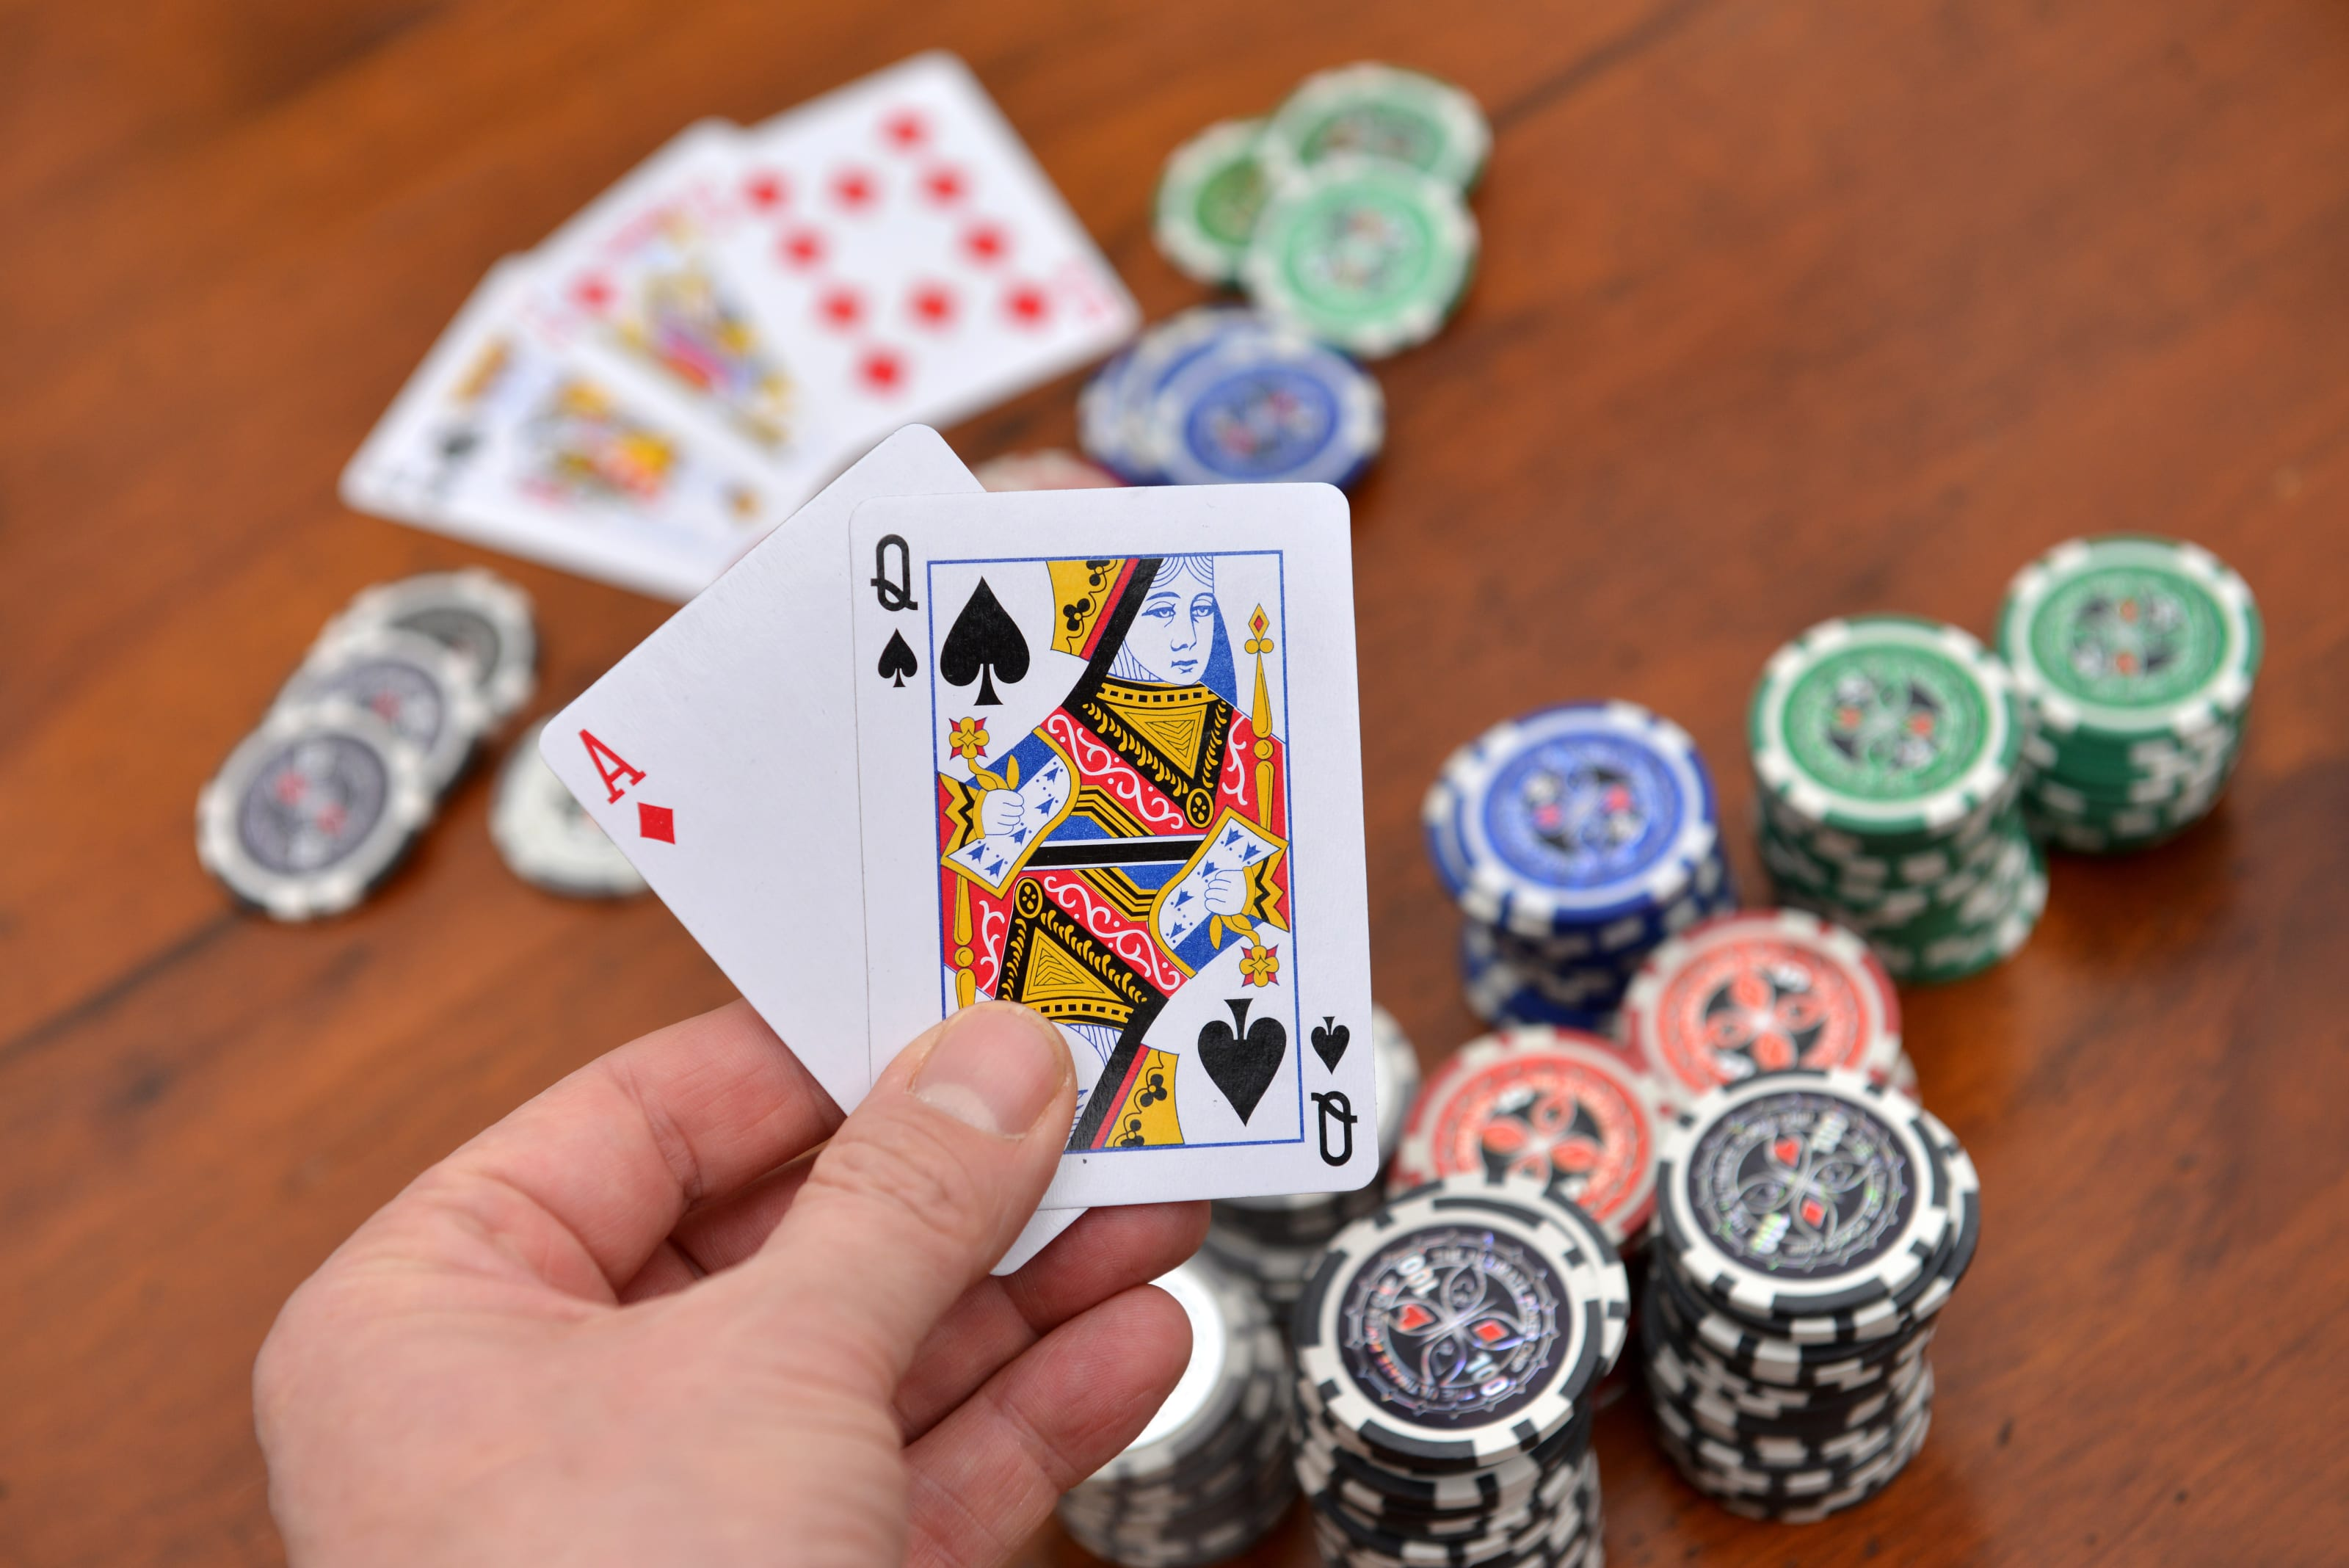 Poker hand facing with cards down and chips